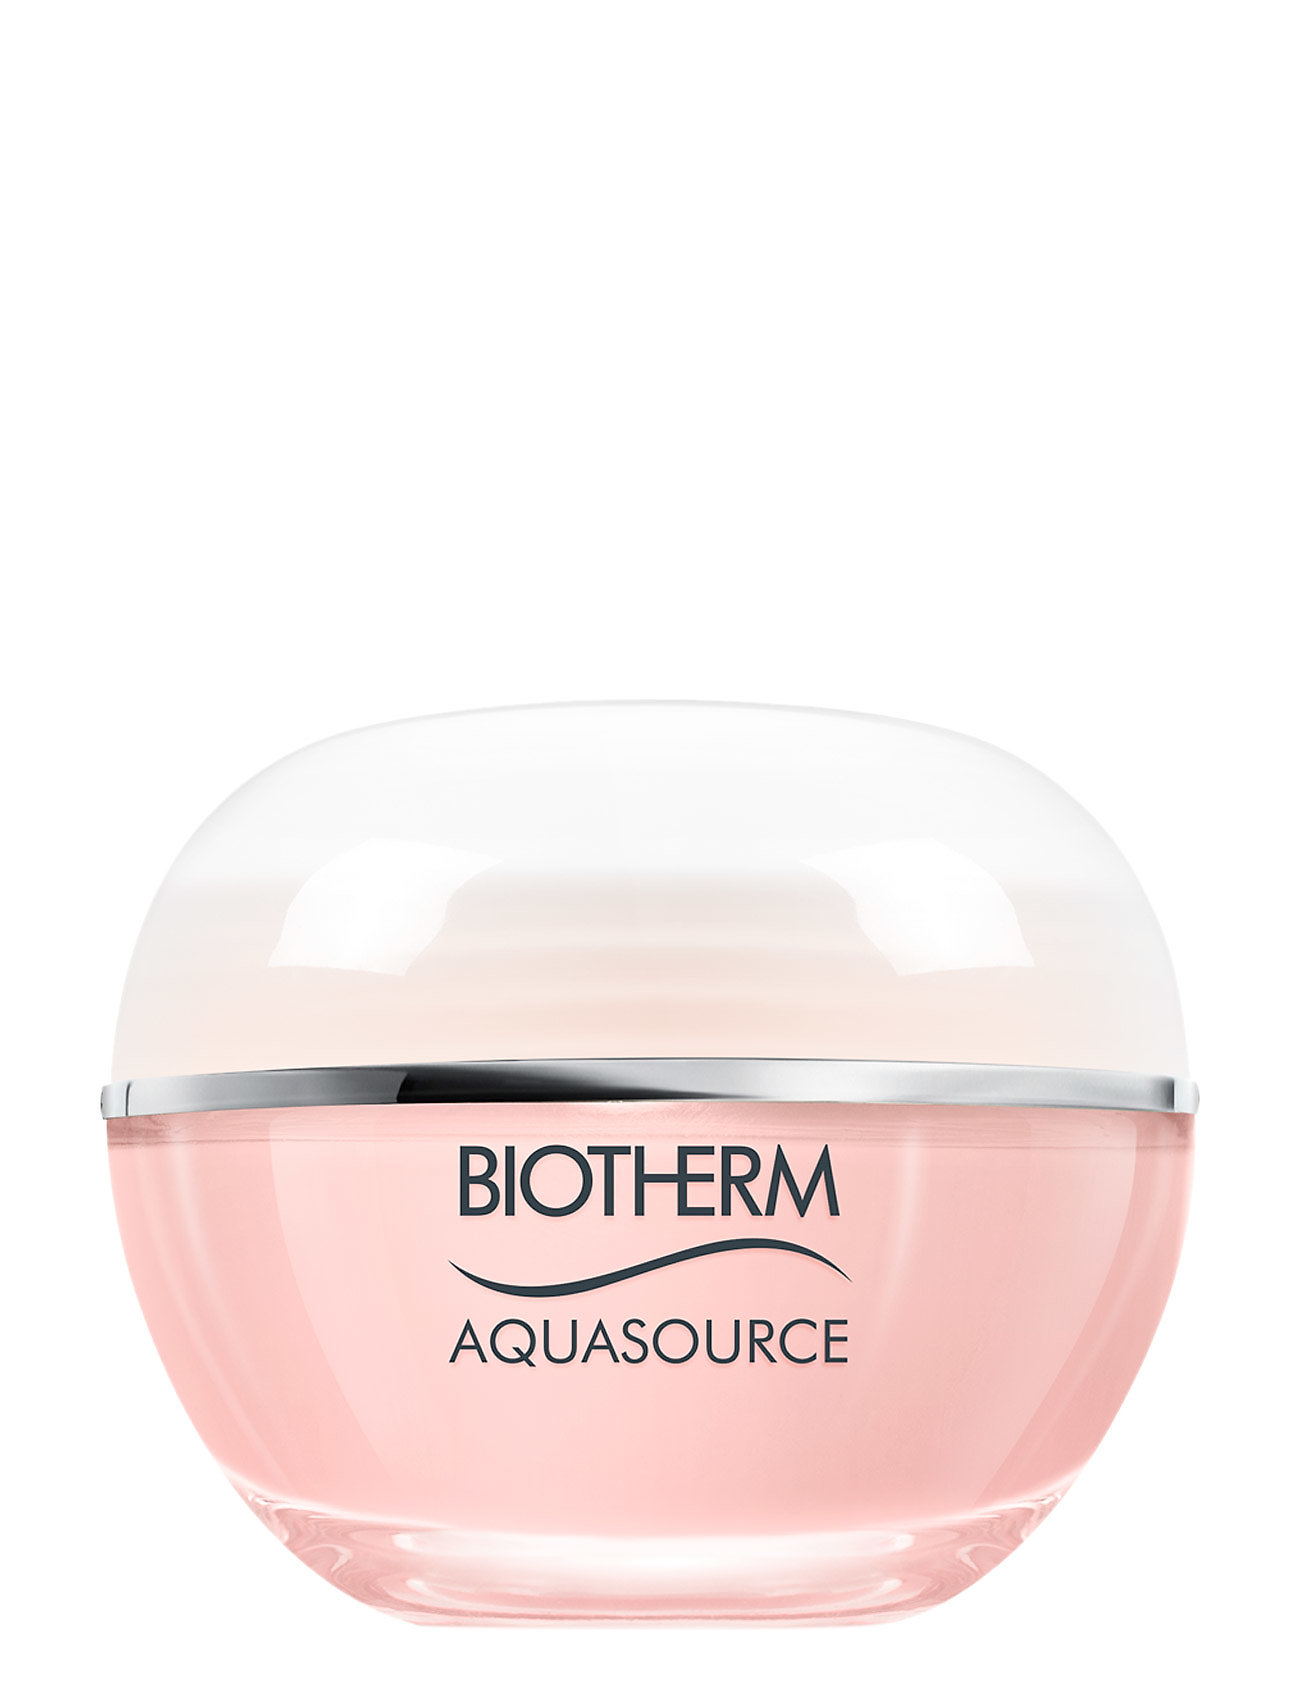 Image of Aquasource Cream Dry Skin 30 Ml Beauty WOMEN Skin Care Face Day Creams Nude Biotherm (3325889507)